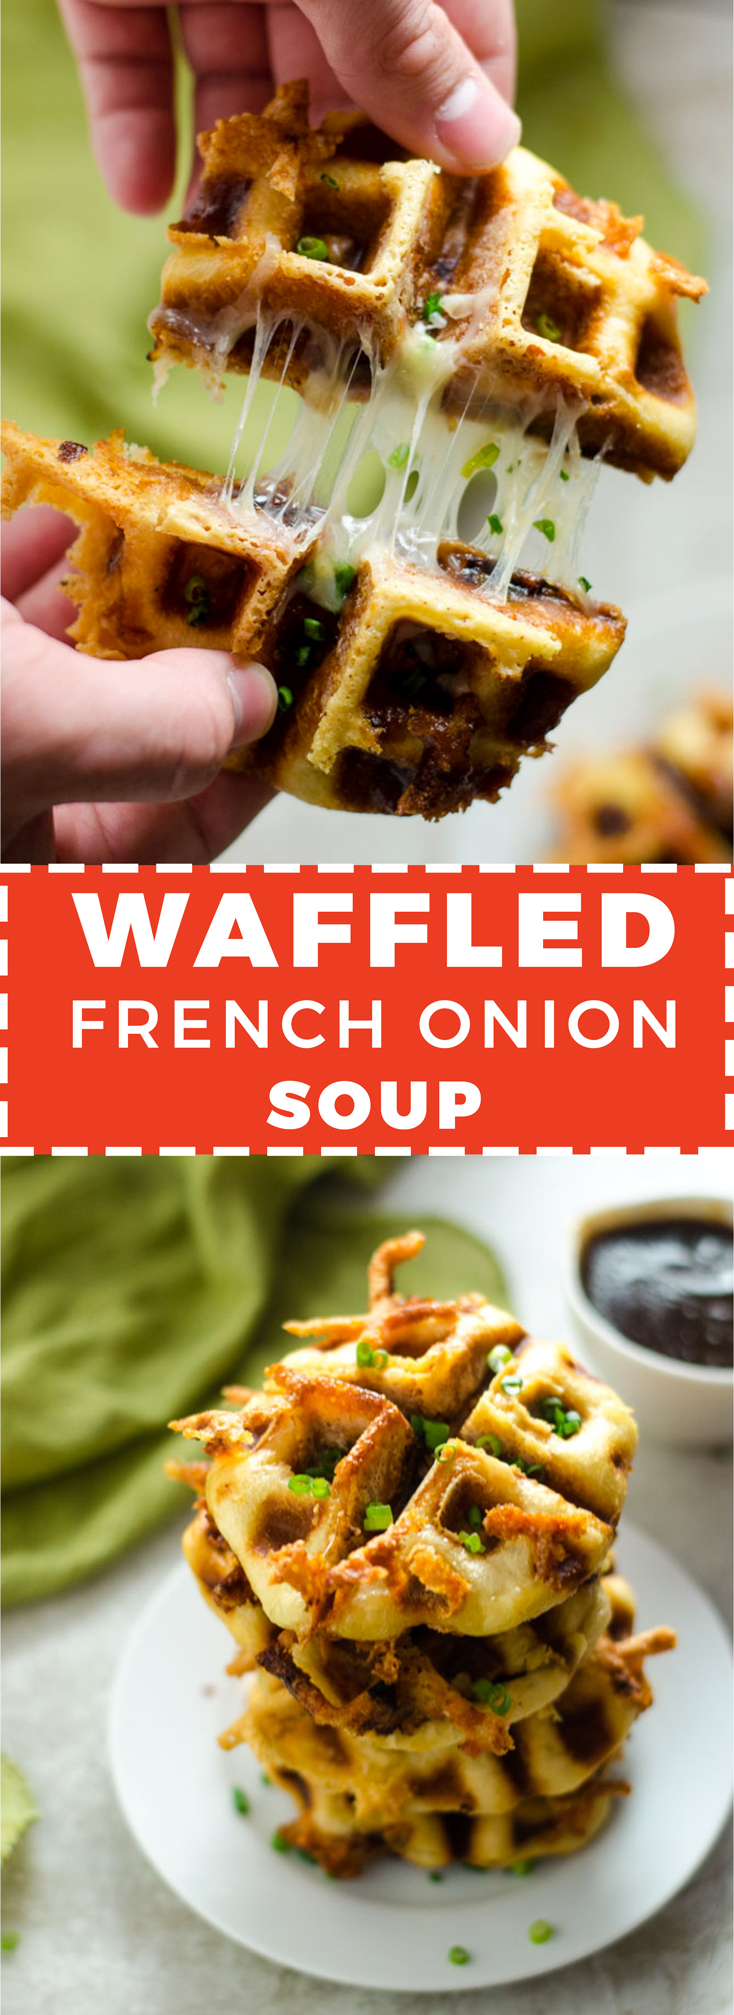 Waffled French Onion Soup. Savory puff pastry pockets, stuffed with gruyere cheese and caramelized onions, topped with an oniony beef gravy. | hostthetoast.com